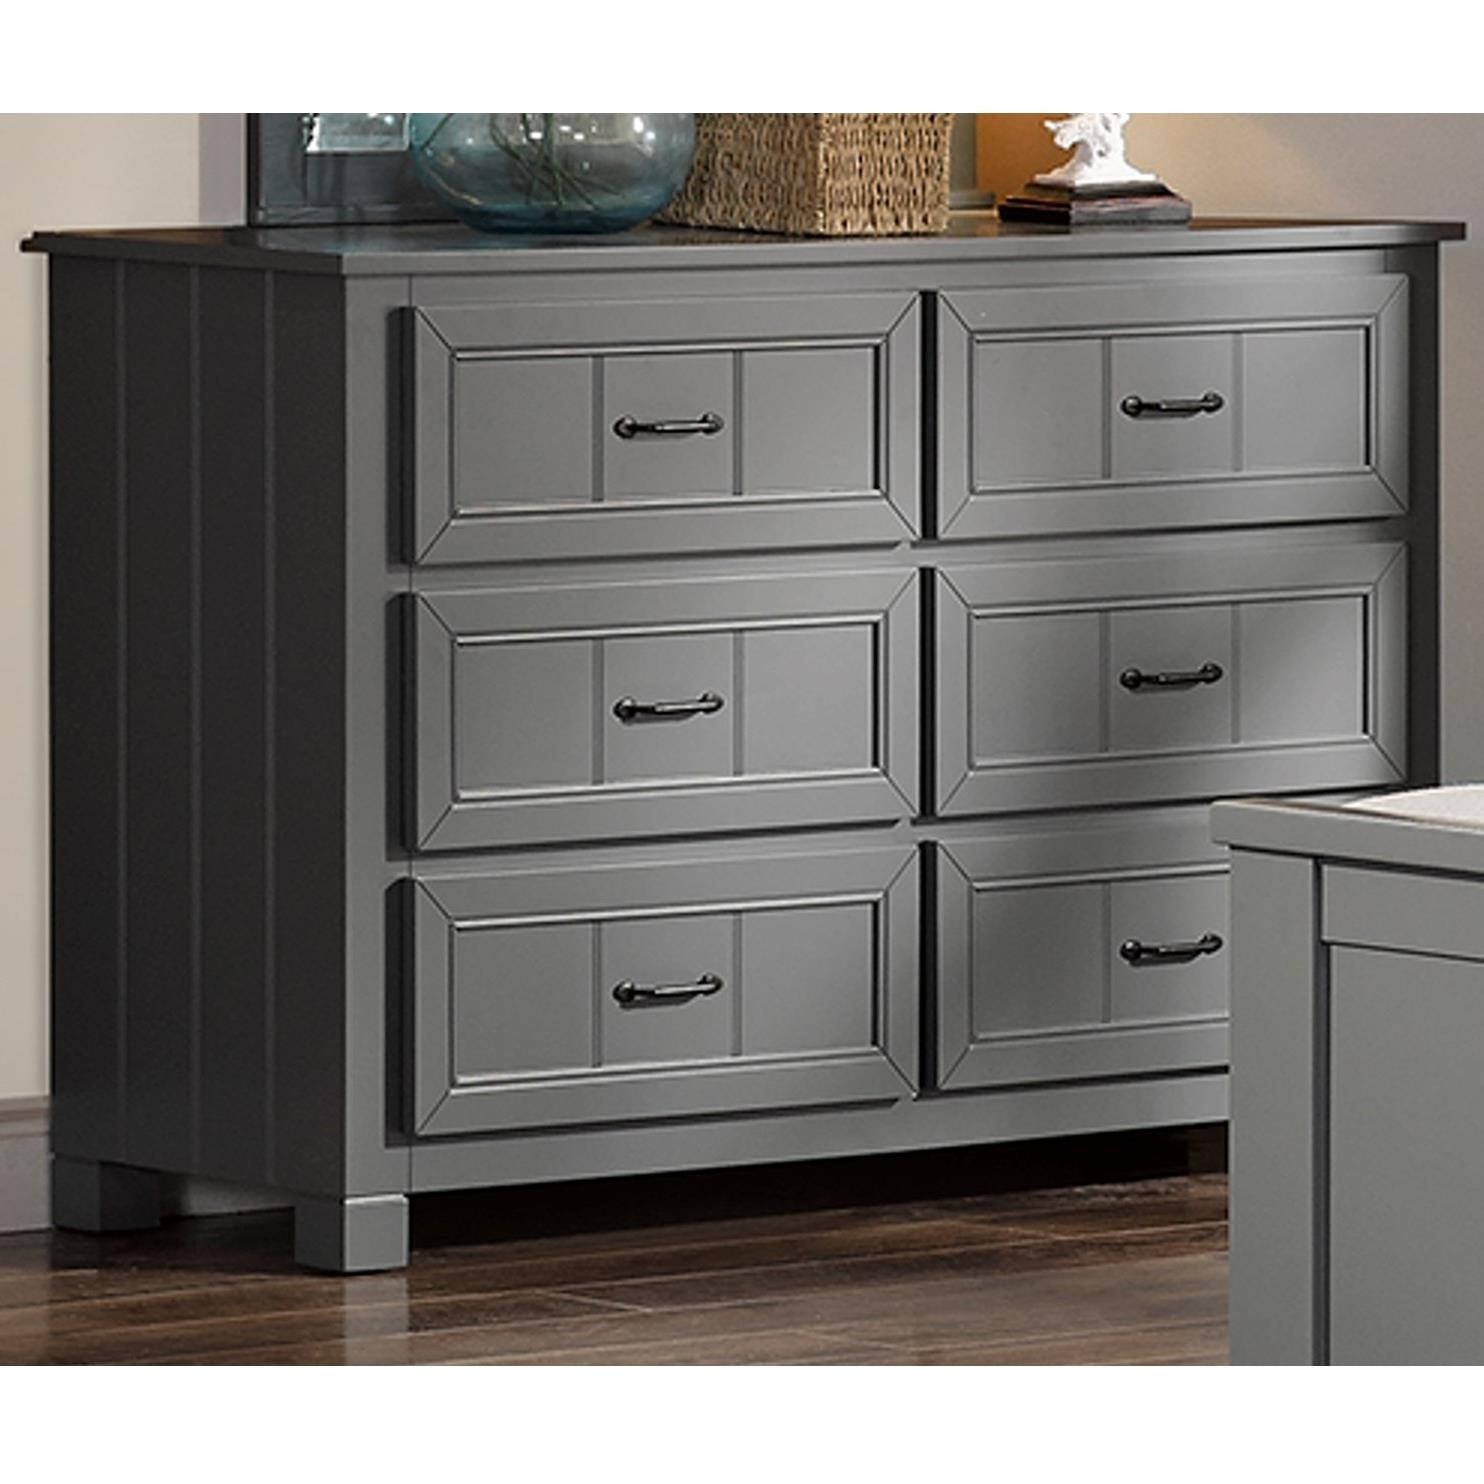 New Classic Taylor Youth Bedroom Casual 6 Drawer Dresser